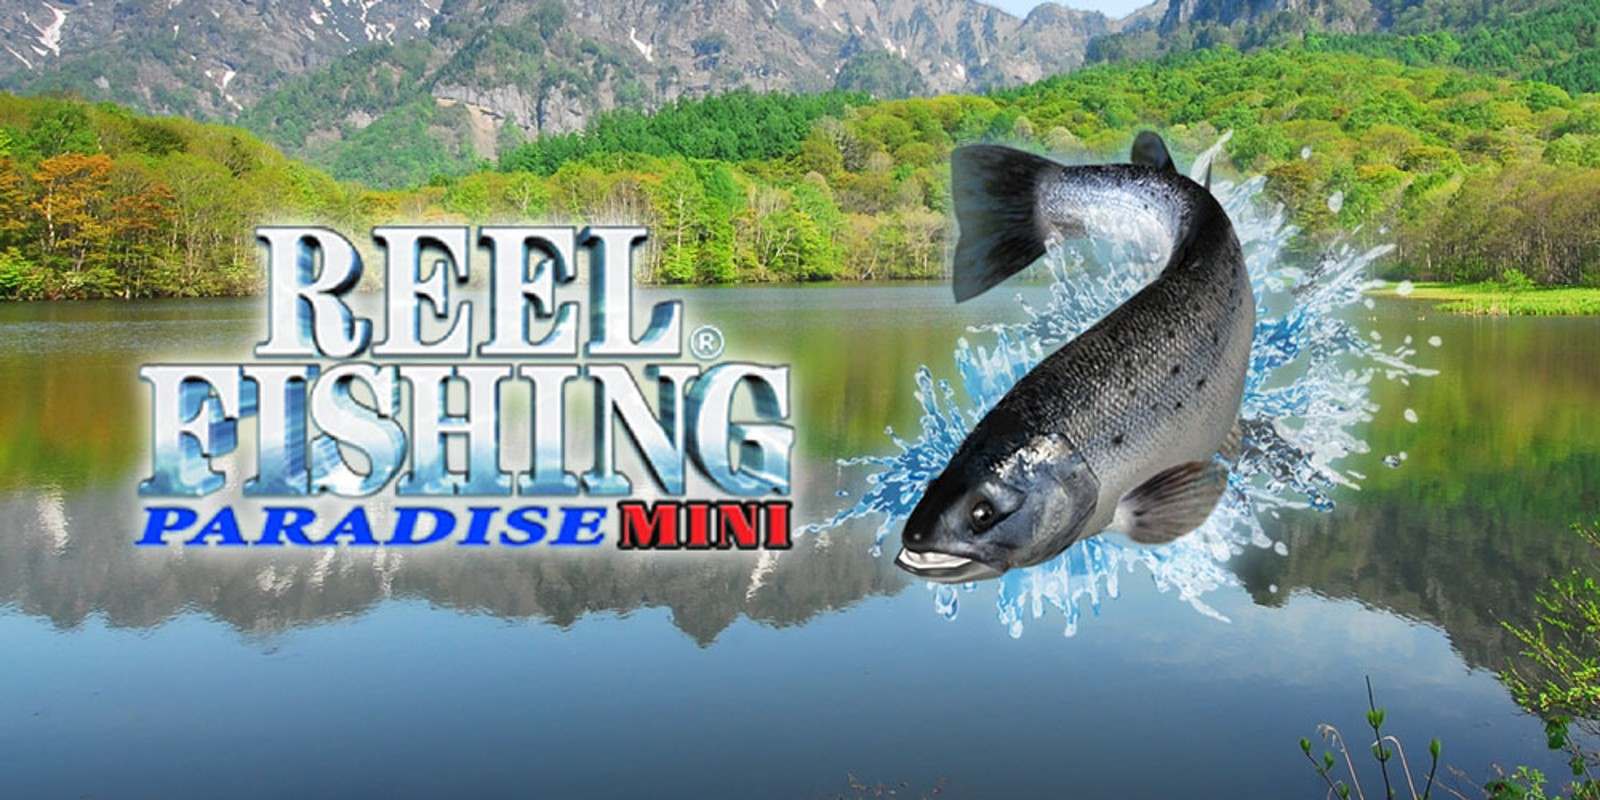 Reel Fishing® 3D Paradise Mini